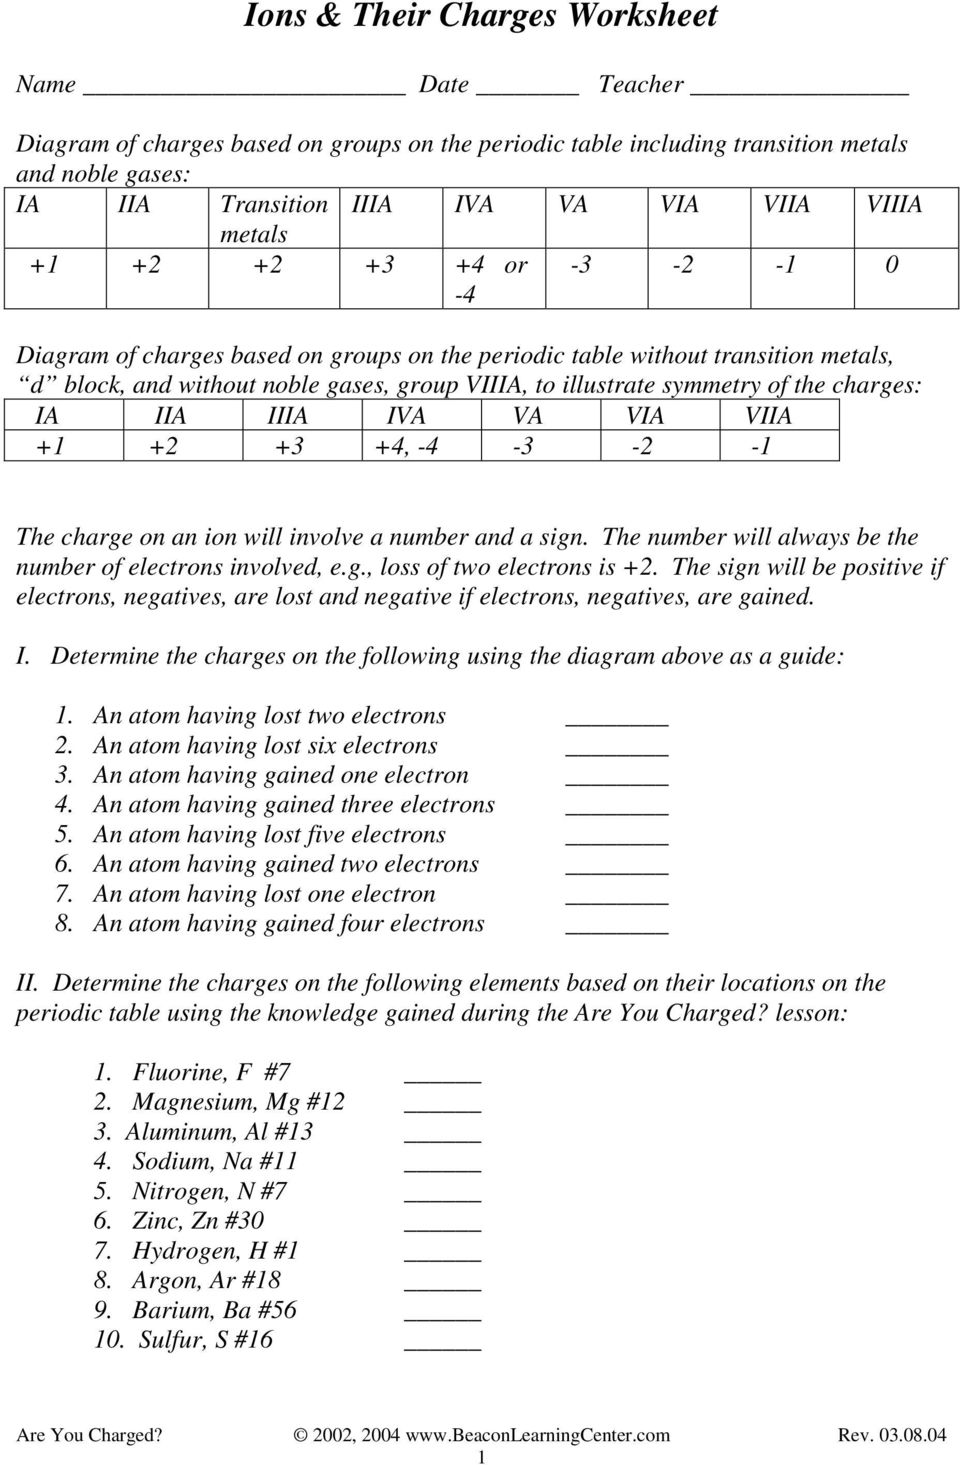 Ions their charges worksheet pdf charges ia iia iiia iva va via viia 1 2 3 urtaz